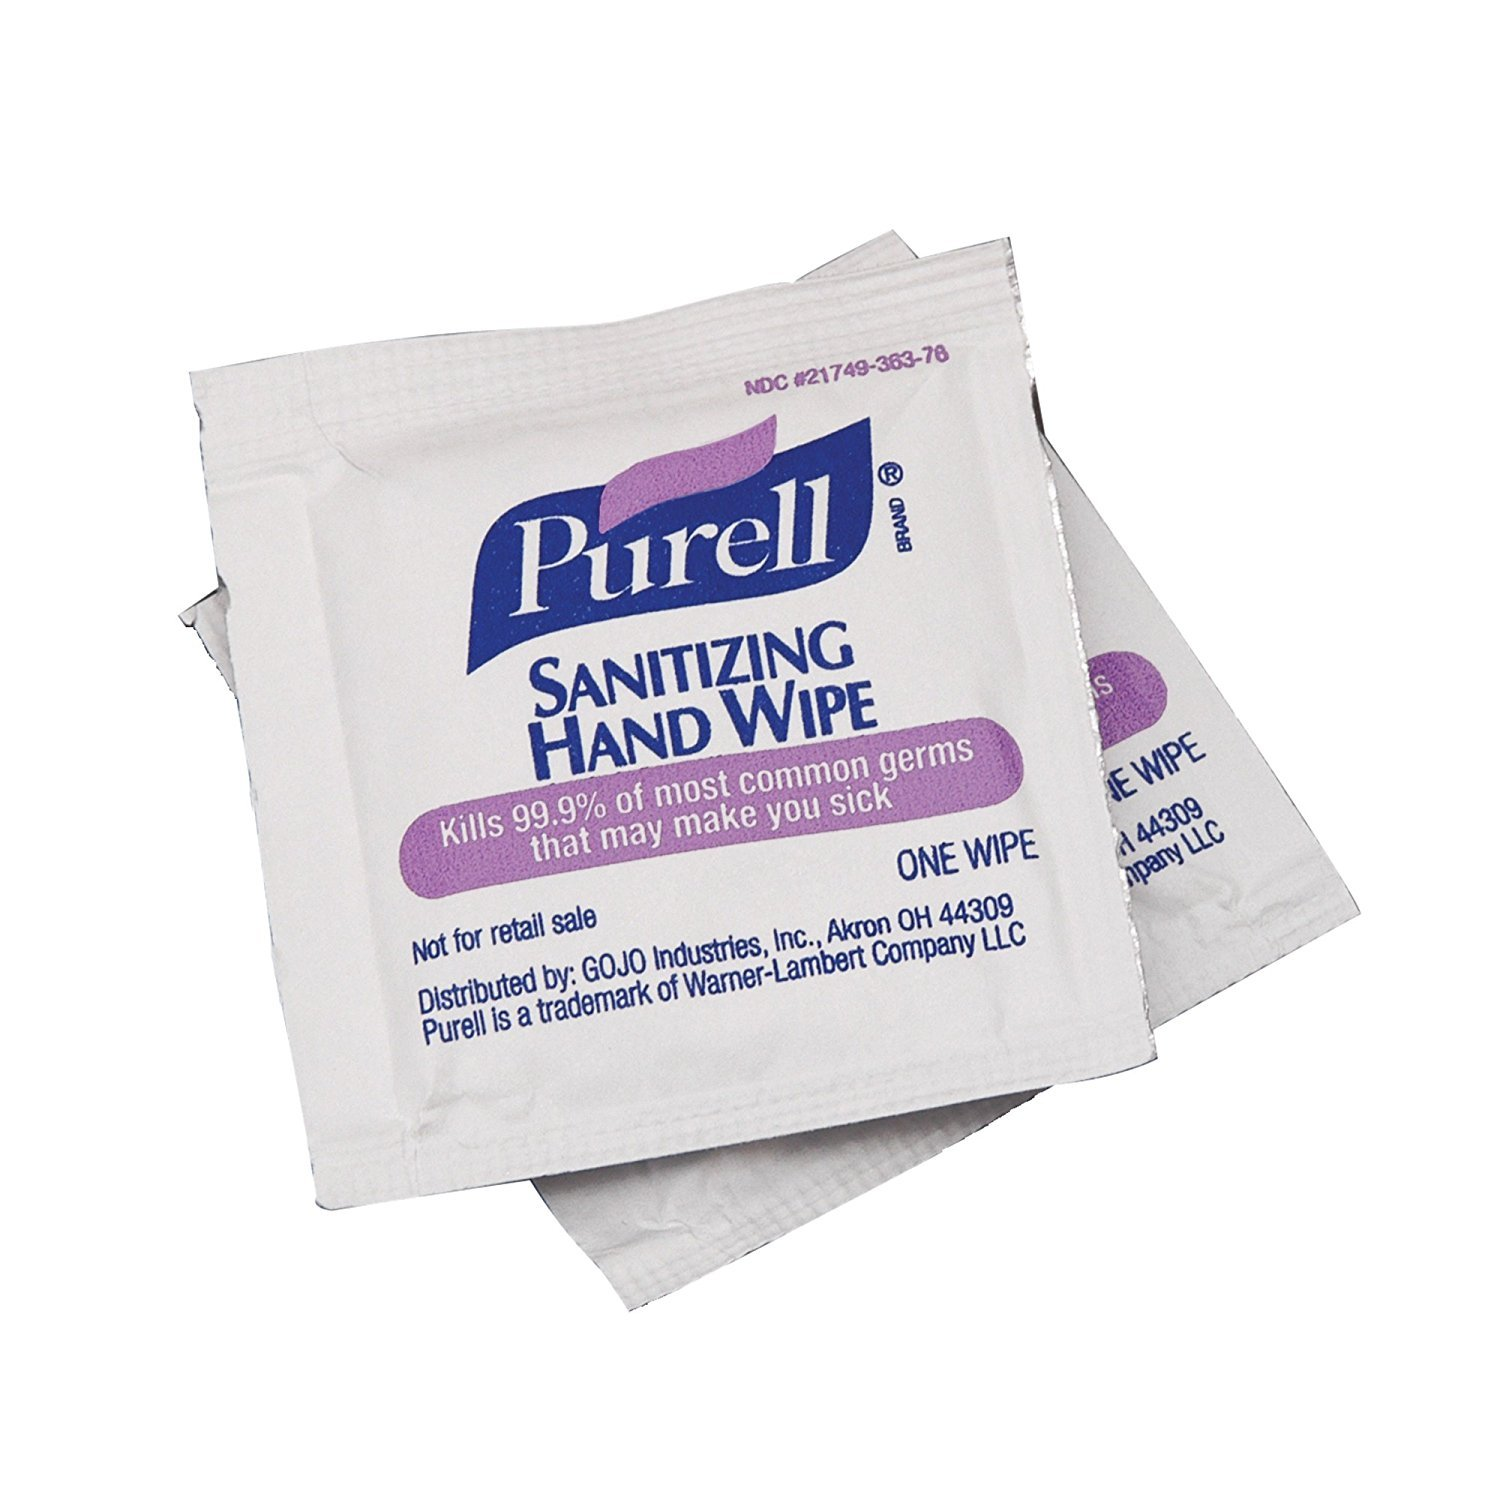 PURELL Sanitizing Hand MDhgG Wipes - Individually Single Wrapped, 300 Count (5 Pack) by PuWeZl